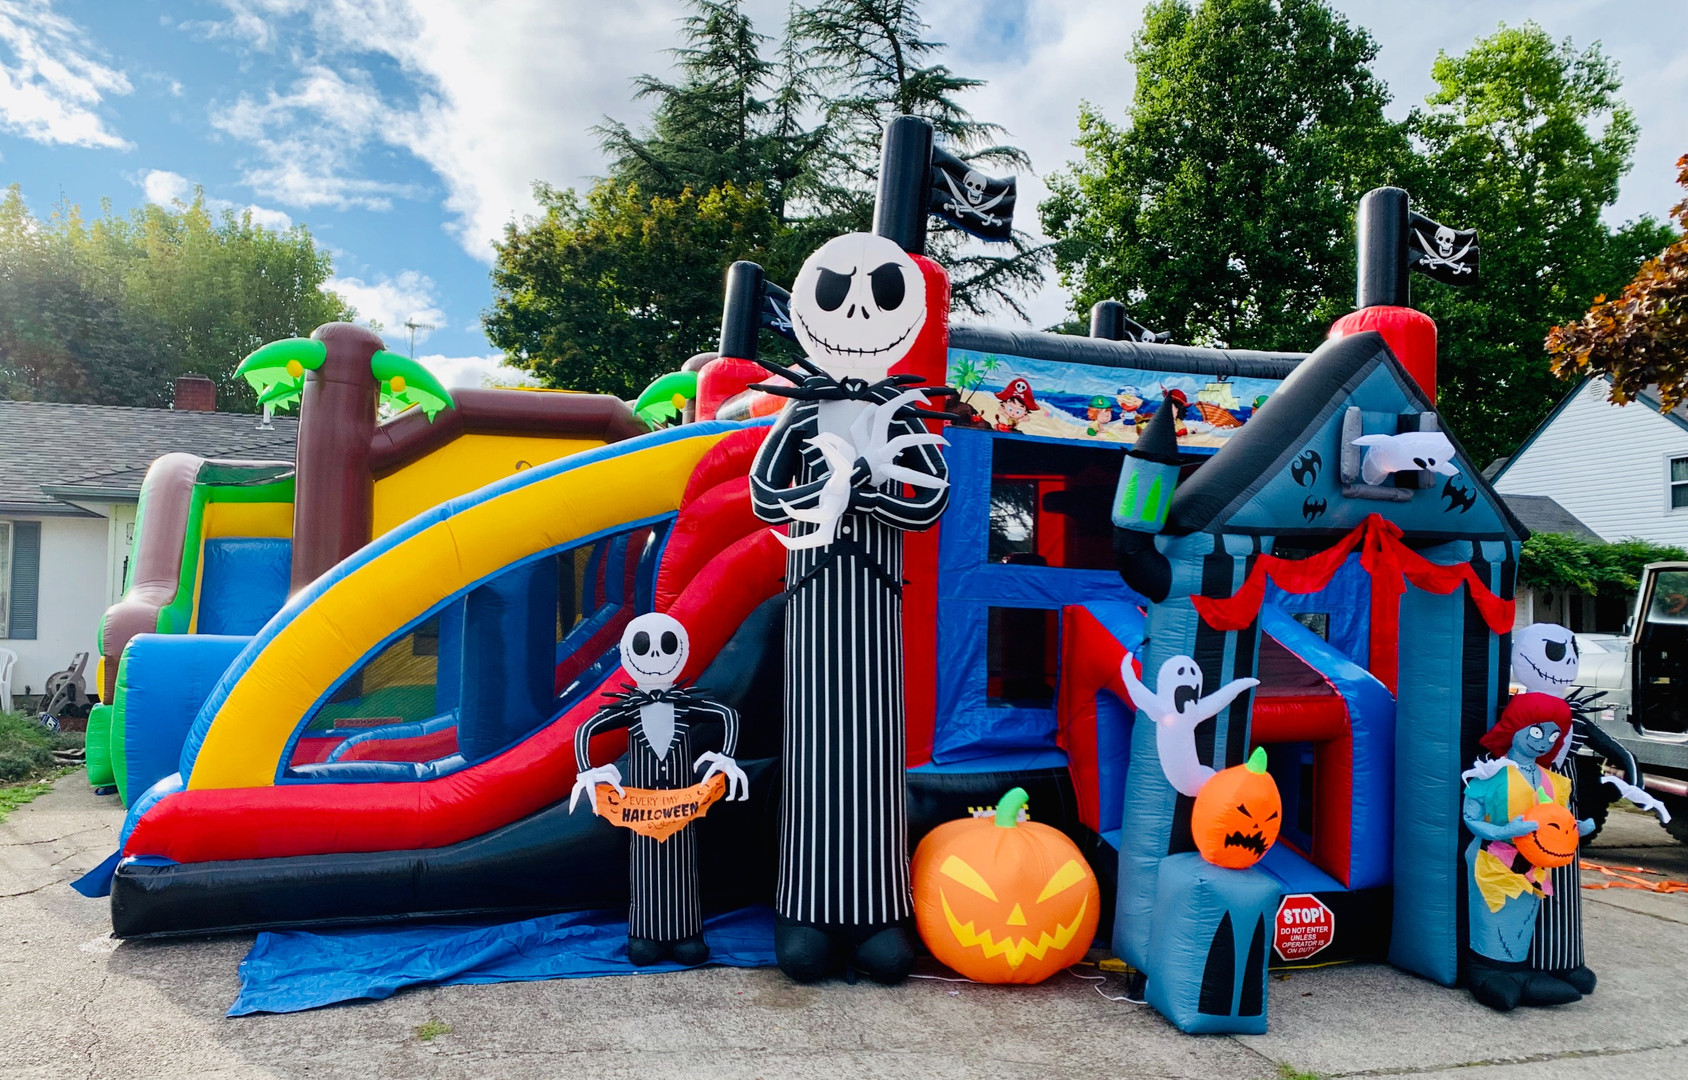 Nightmare b4 xmas with XL Pirate double slide bounce house rental